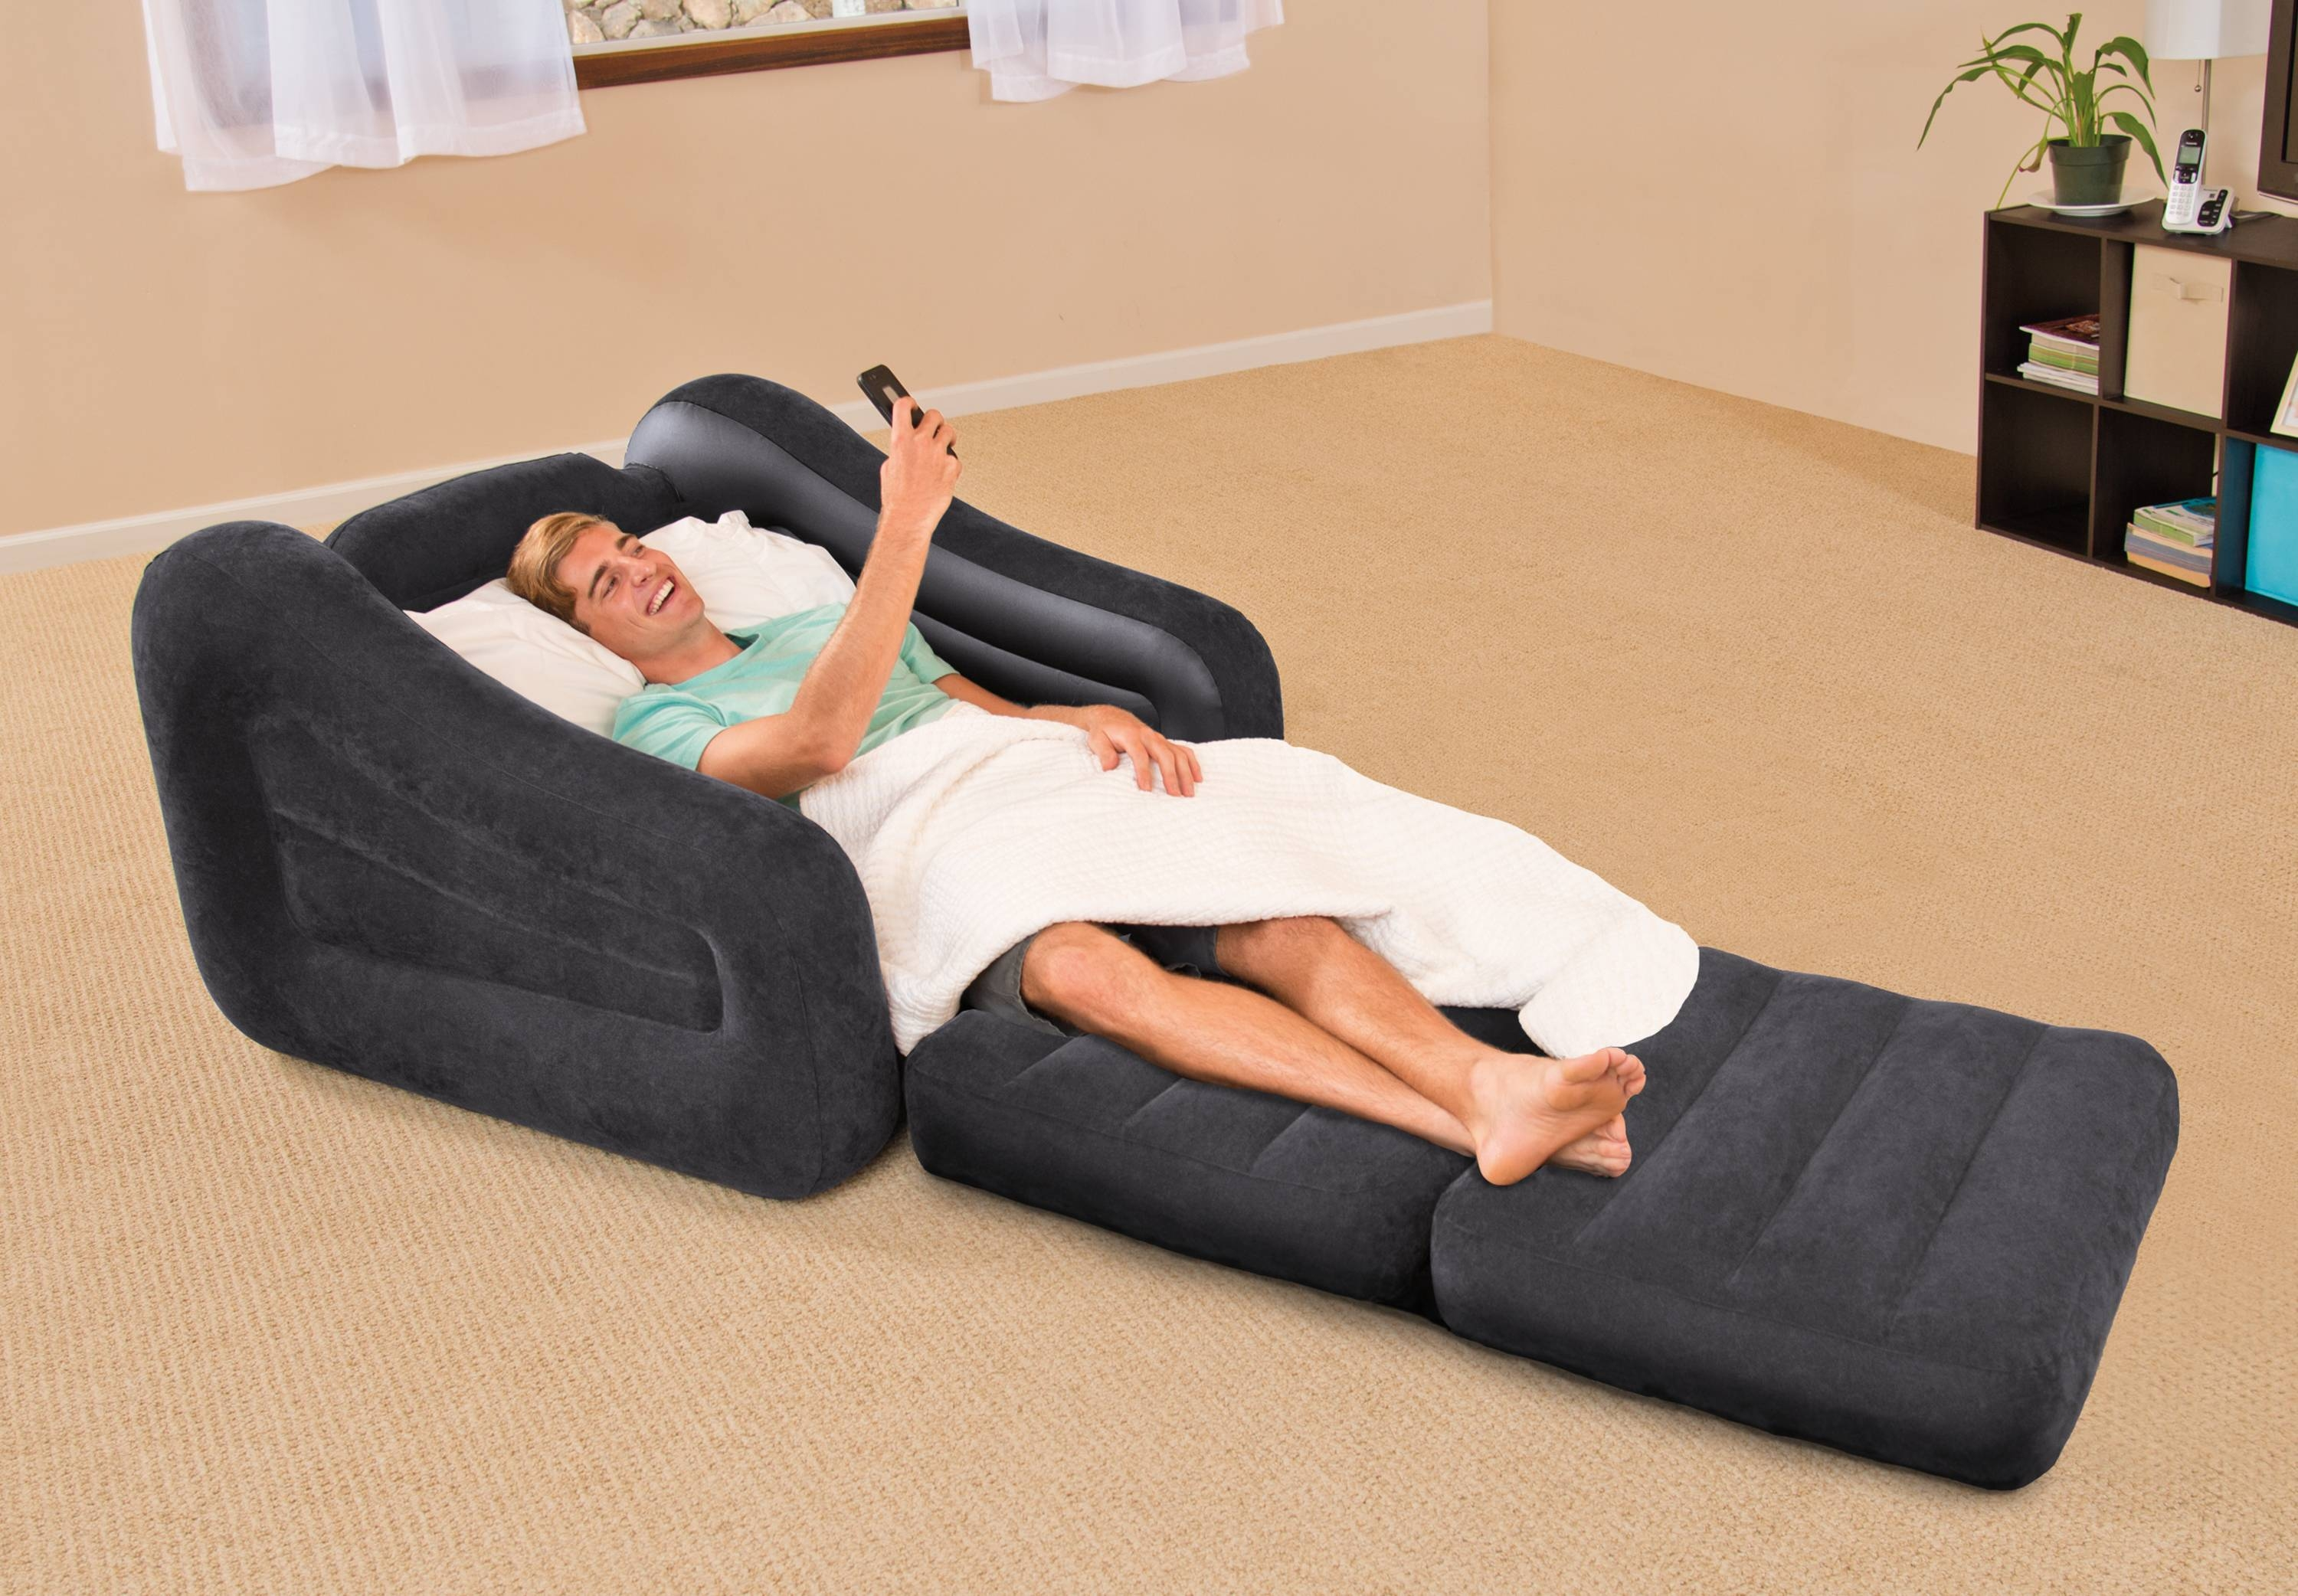 Intex Inflatable Air Chair With Pull Out Twin Bed Mattress Sleeper intended for Intex Sleep Sofas (Image 2 of 15)